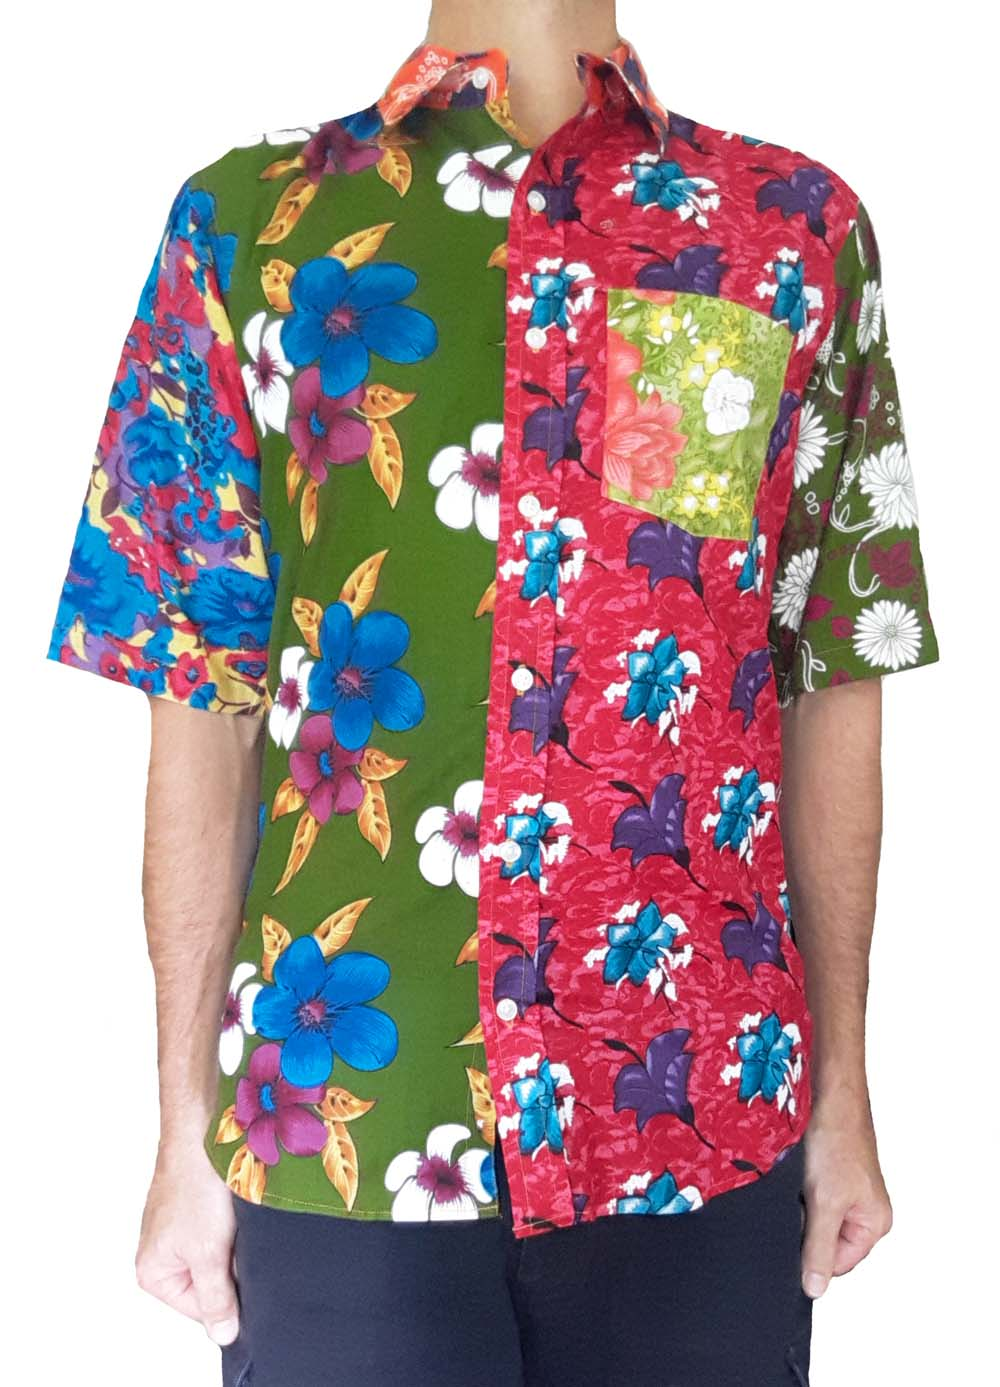 Bent Banani Men's, 100% Cotton, Short Sleeve Unique Floral Shirt - Made of 9 Different Floral Fabrics